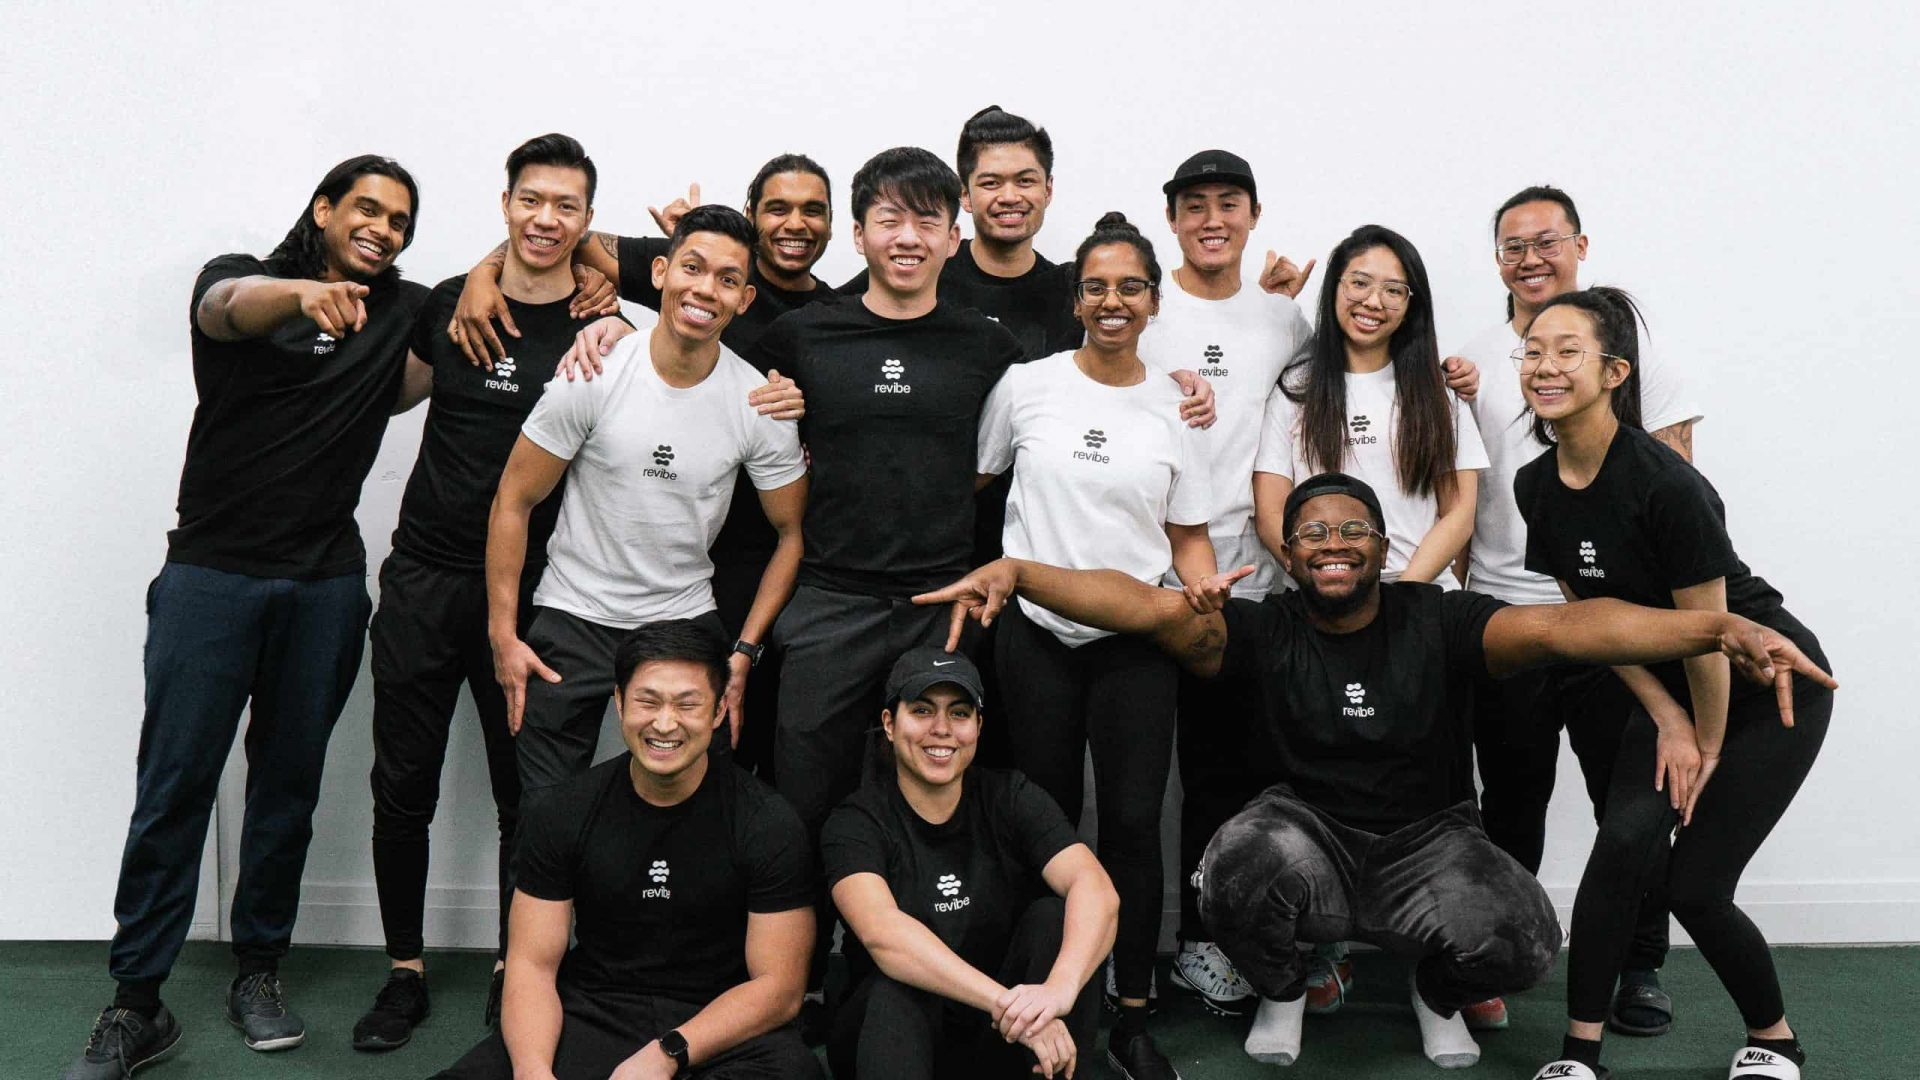 Staff photo of Revibe Massage Therapy in Mississauga